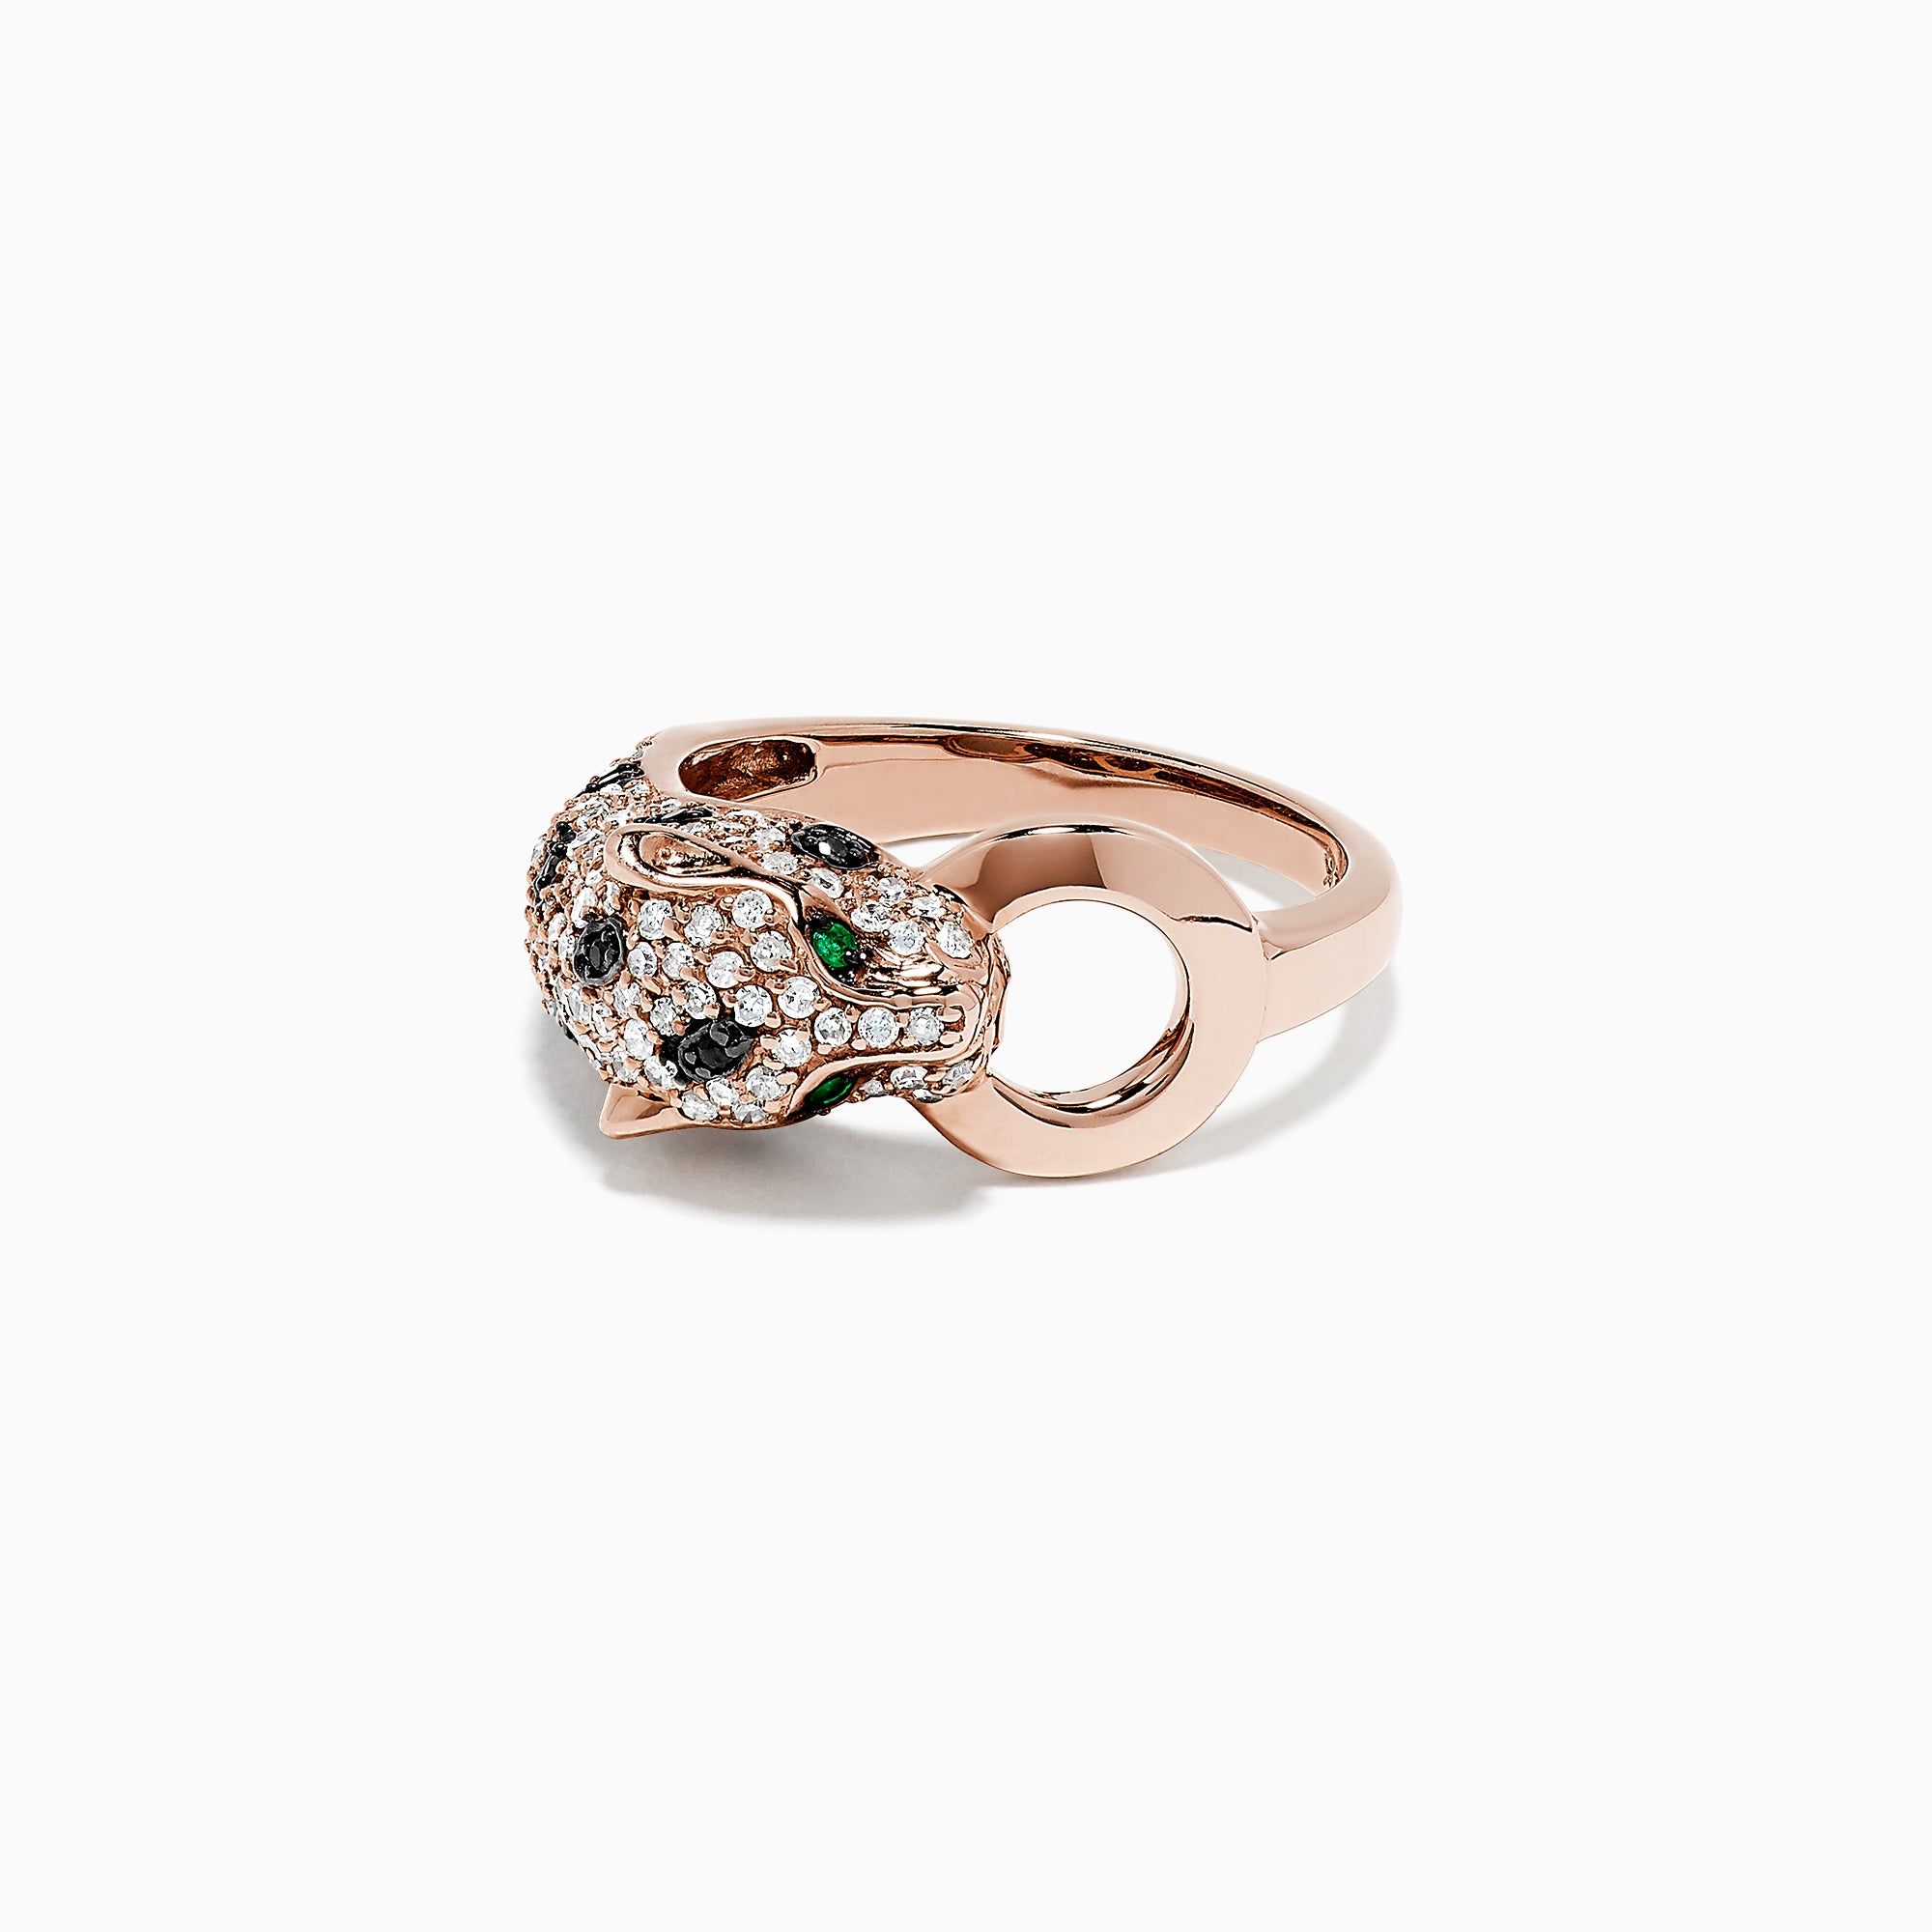 Effy Signature 14K Rose Gold Diamond and Emerald Ring, 0.66 TCW